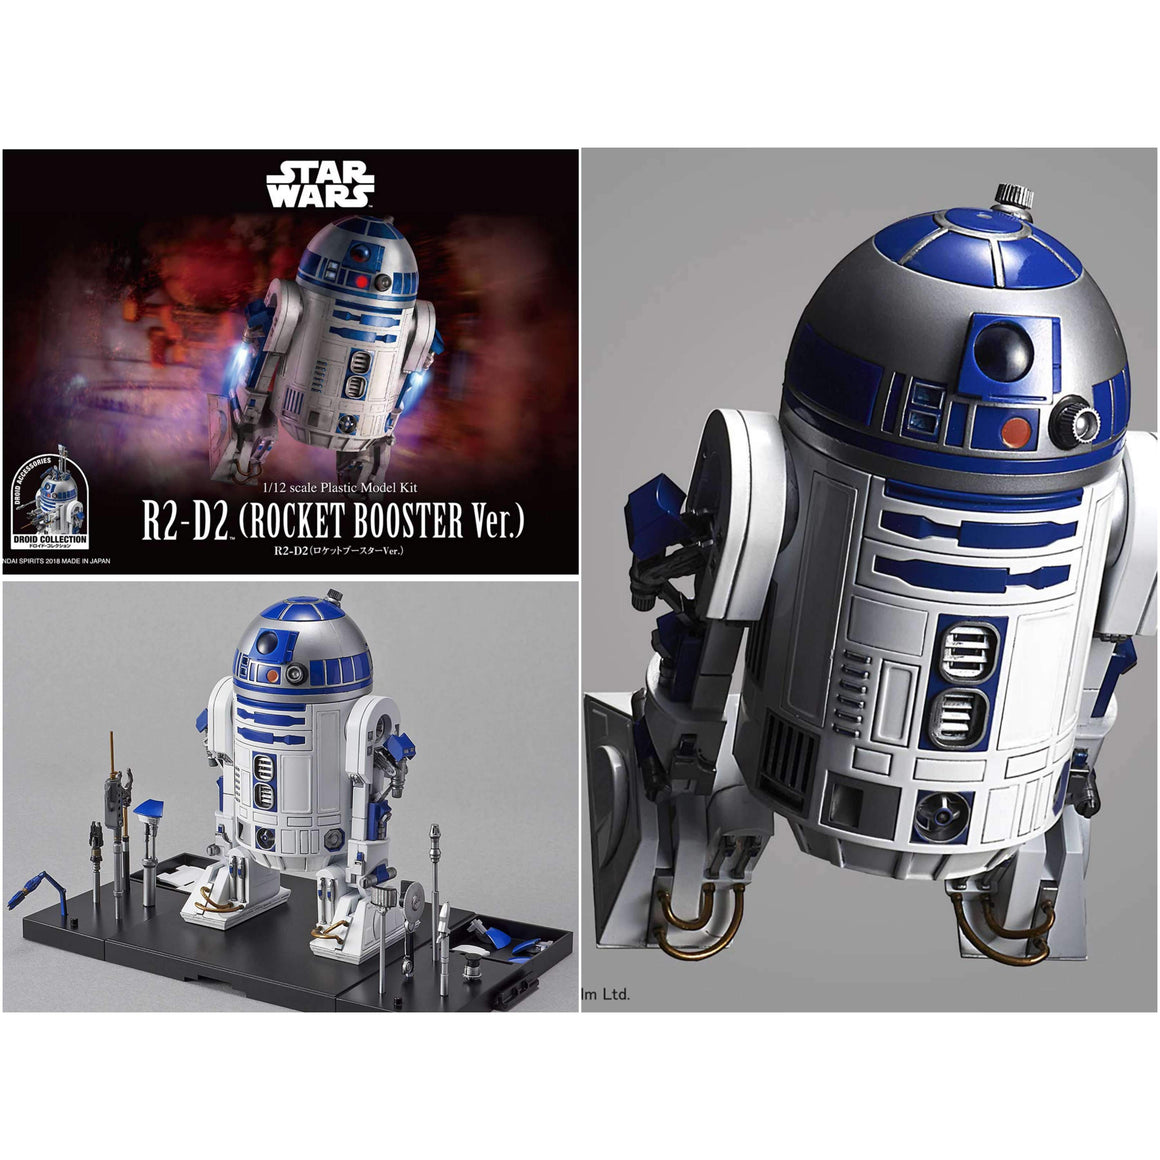 Star Wars R2-D2 (Rocket Booster Ver.) 1/12 Scale Model Kit